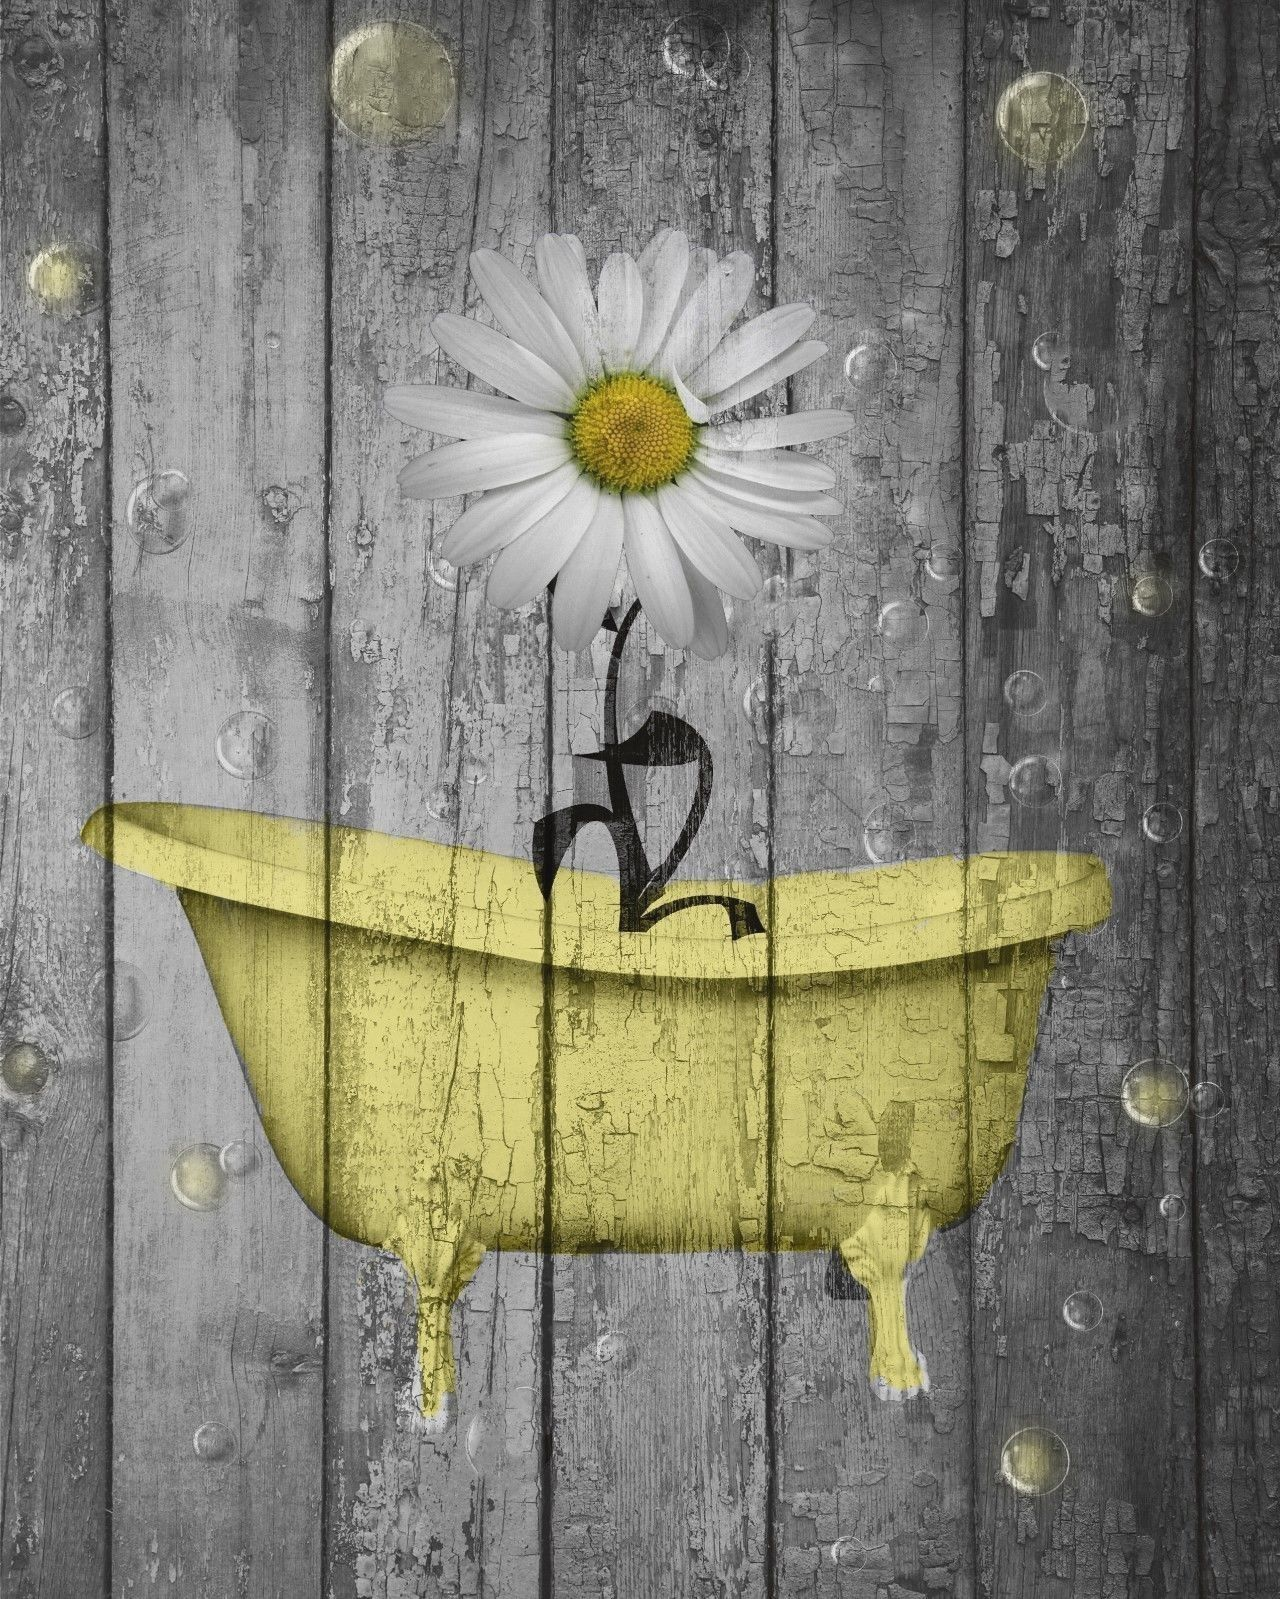 Rustic Yellow Daisy Flowers Bathtub Vintage Bathroom Powder Room ...